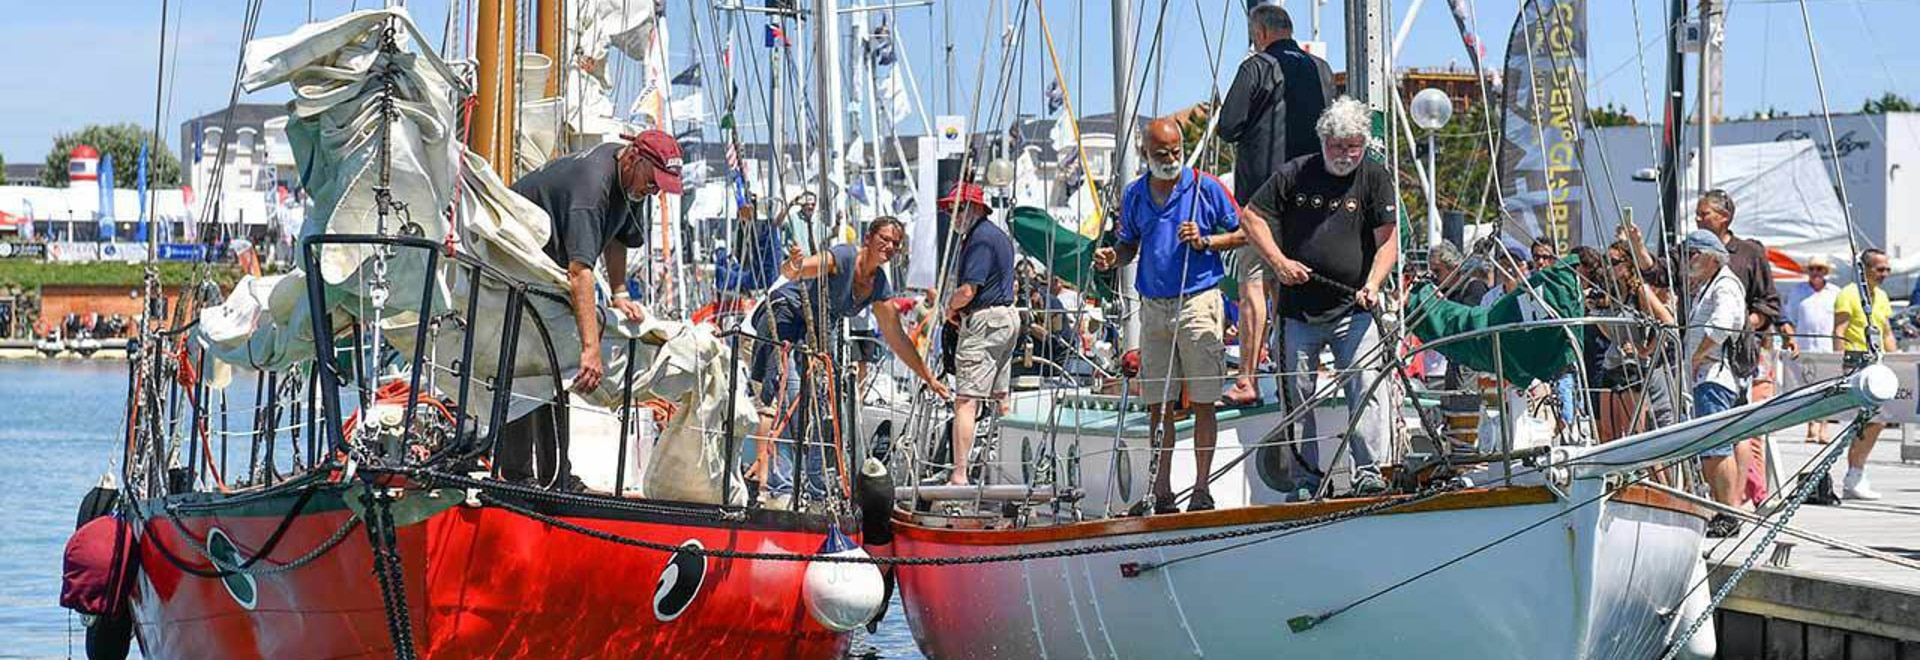 The crew of Bernard Moitessier's famous yacht JOSHUA tie up alongside Sir Robin Knox-Johnston's yacht SUHAILI in Les Sables d'Olonne for only the second time in history since both boats competed ag...